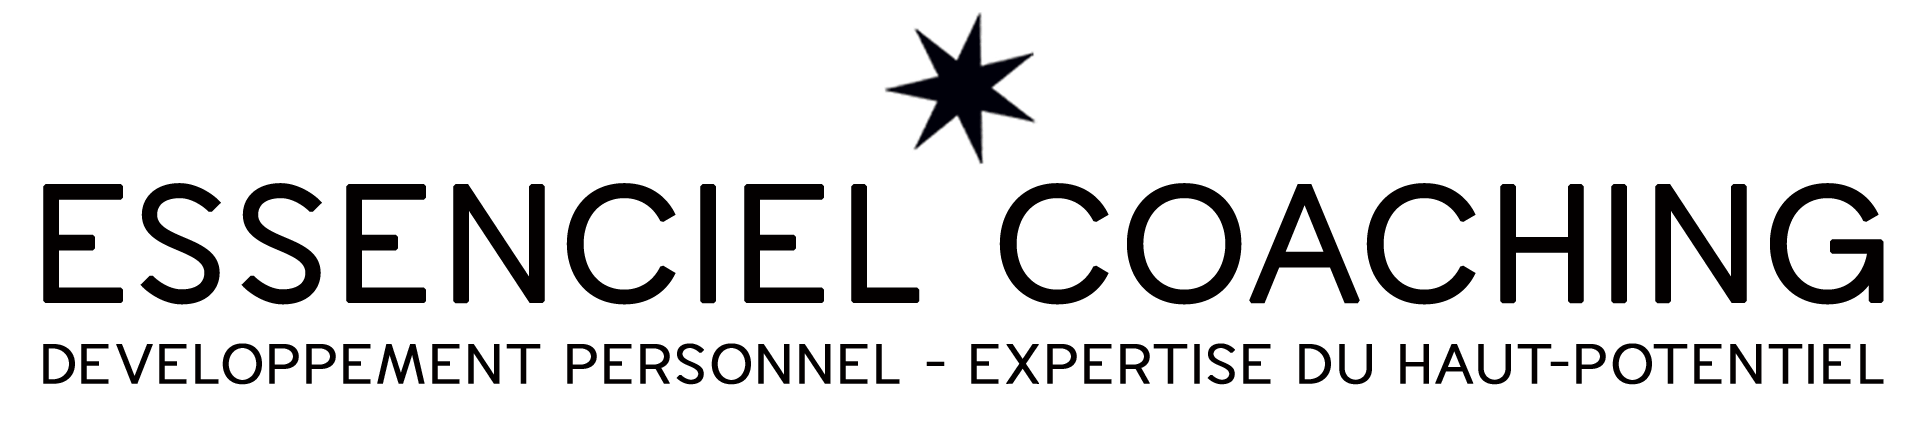 Essenciel Coaching – Nancy – Coaching, Thérapie, Développement Personnel